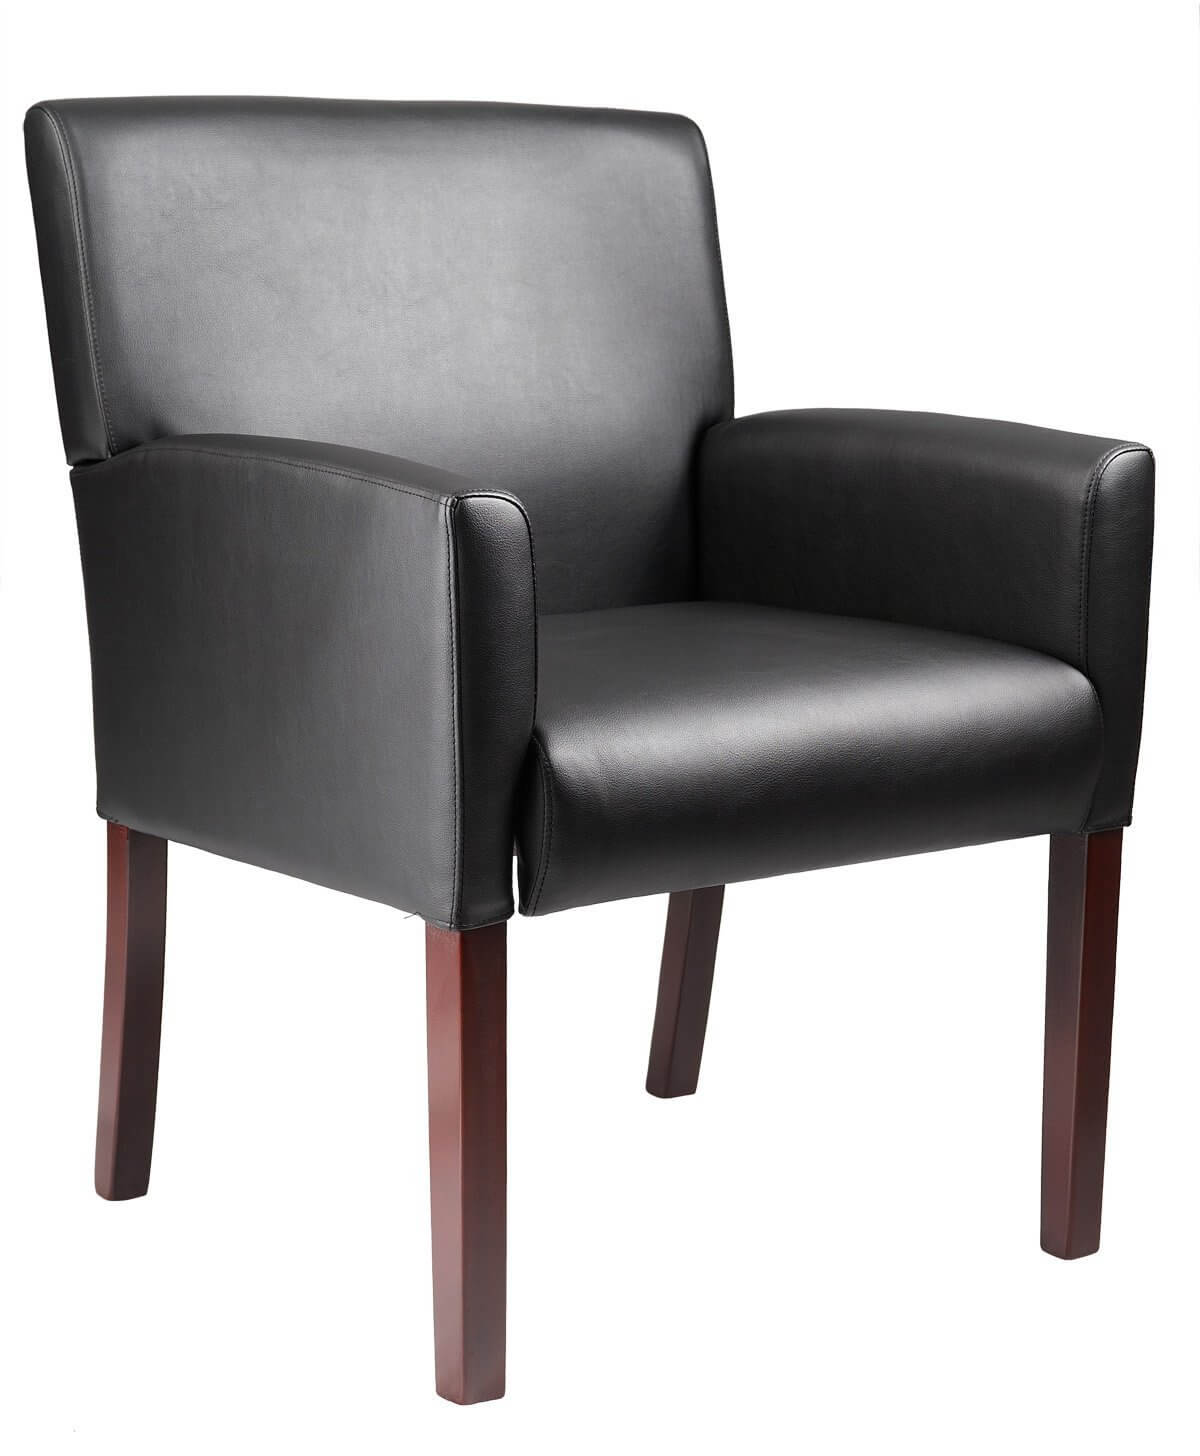 Here's an ideal wood-framed, vinyl upholstery accent chair for a richly decorated room in a dark motif